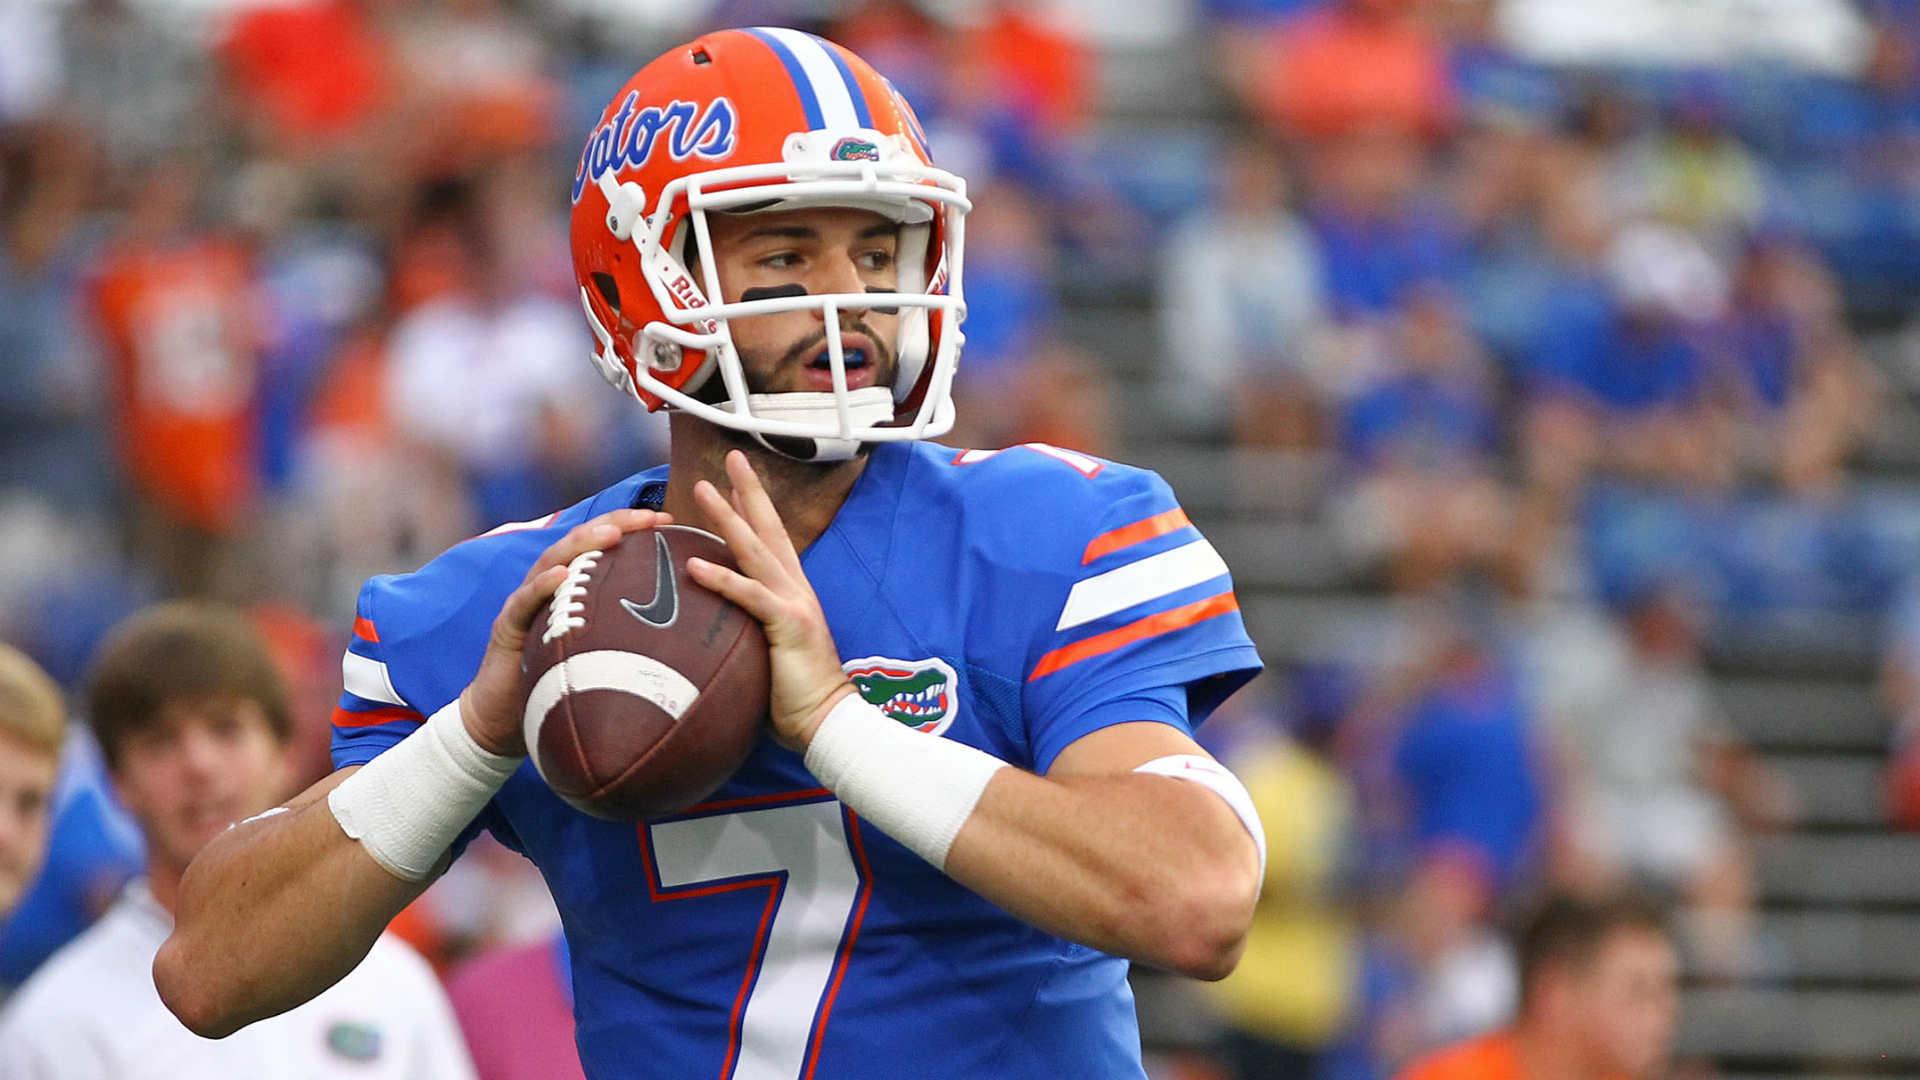 Florida transfer QB Will Grier eligible for entire season at West Virginia